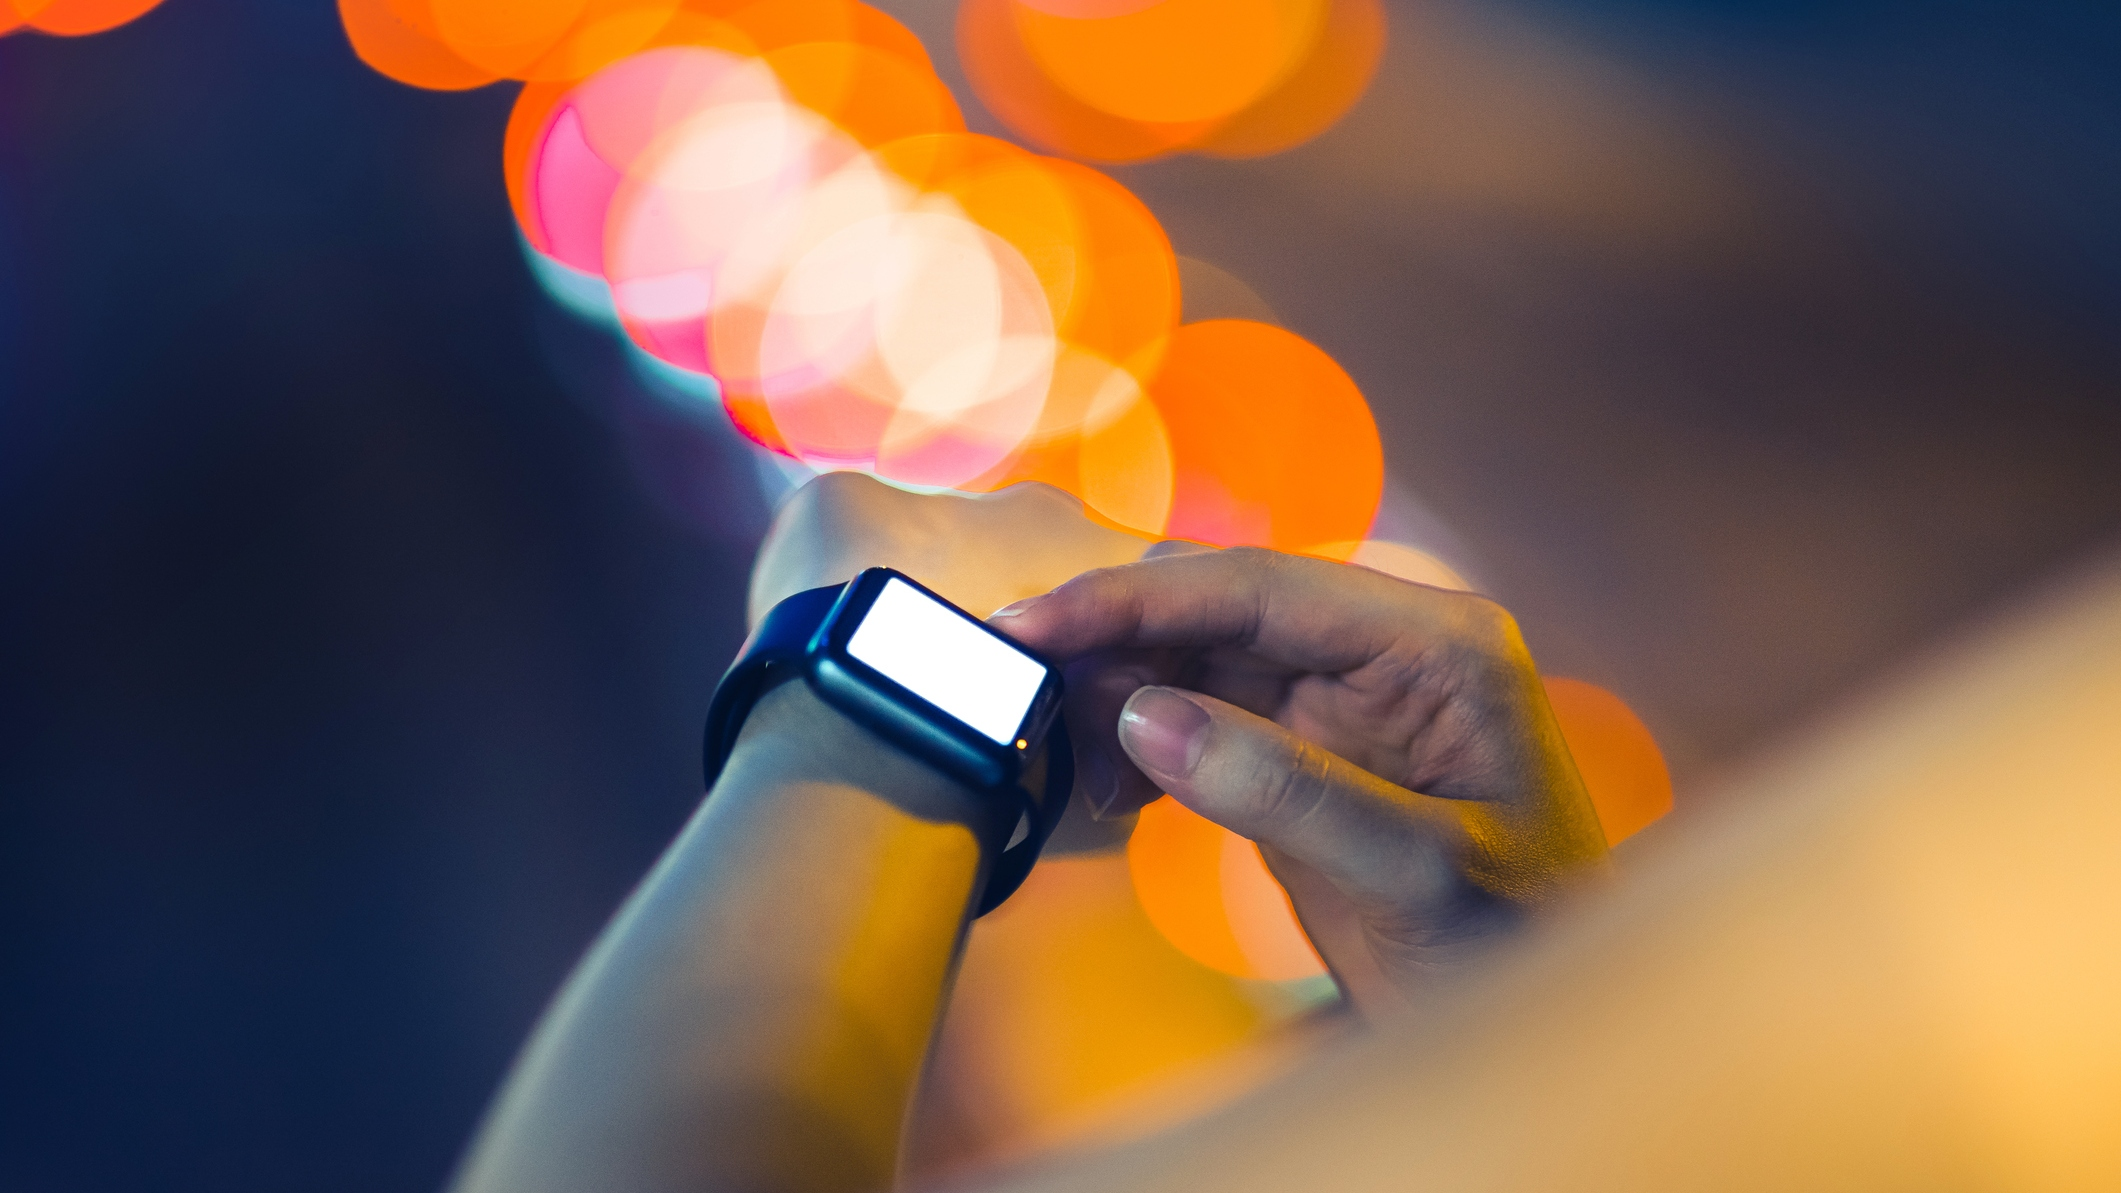 Using physical activity as measured by wearable sensors